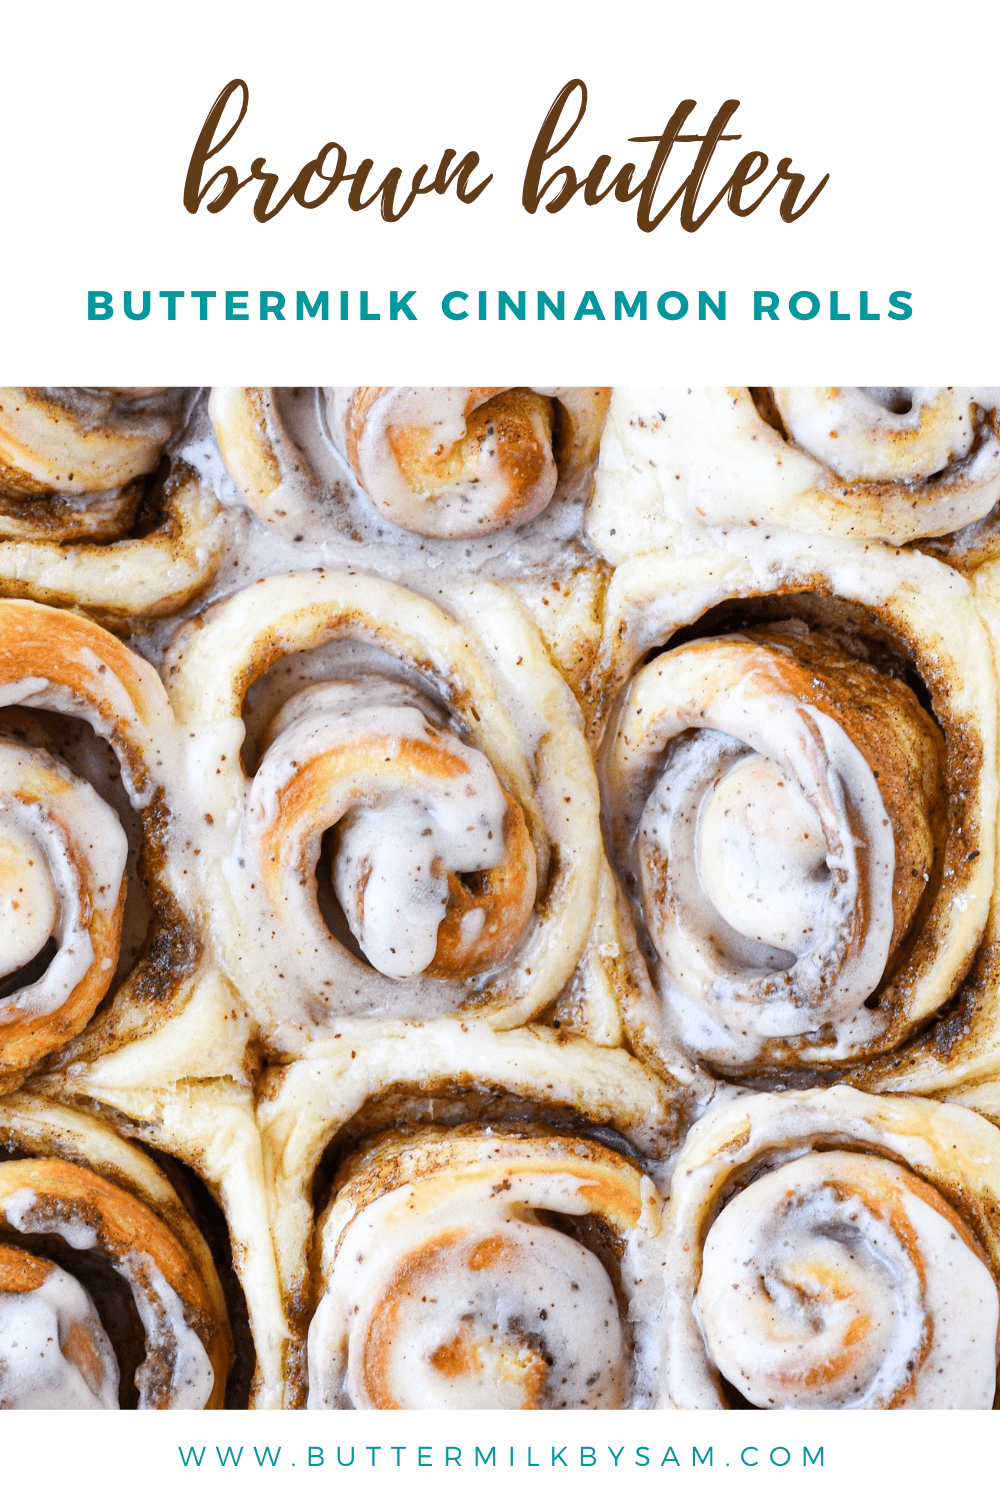 Brown Butter Buttermilk Cinnamon Rolls Buttermilk By Sam Recipe In 2020 Cinnamon Rolls Brown Butter Sweet Dough